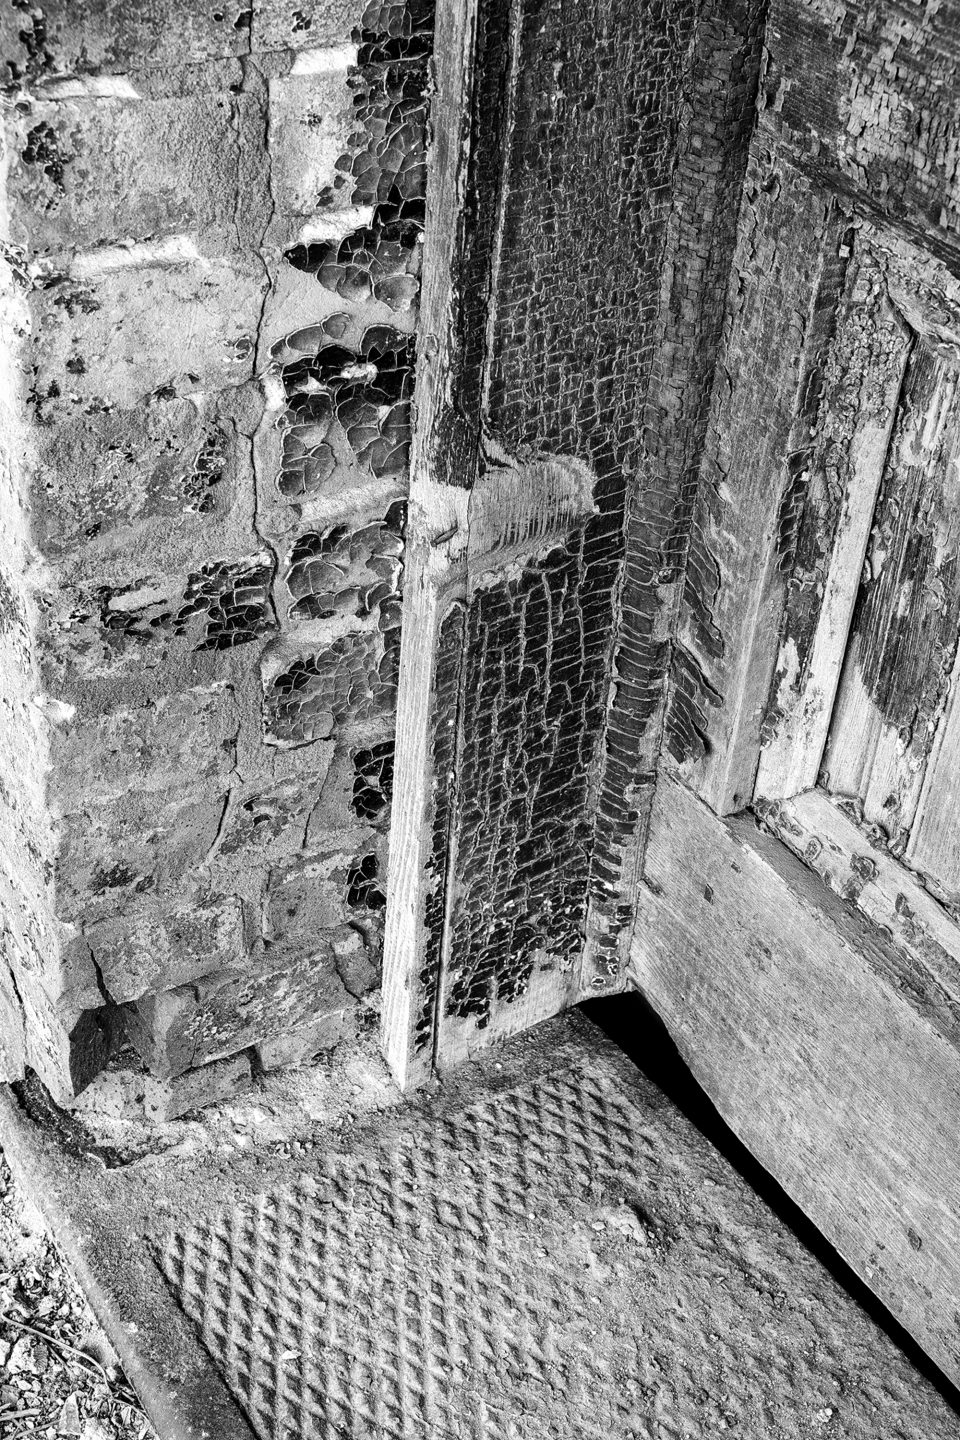 Detail photograph of the iron and wood door step of the R.C. Tibbs & Sons building in Hushpuckena, Mississippi.